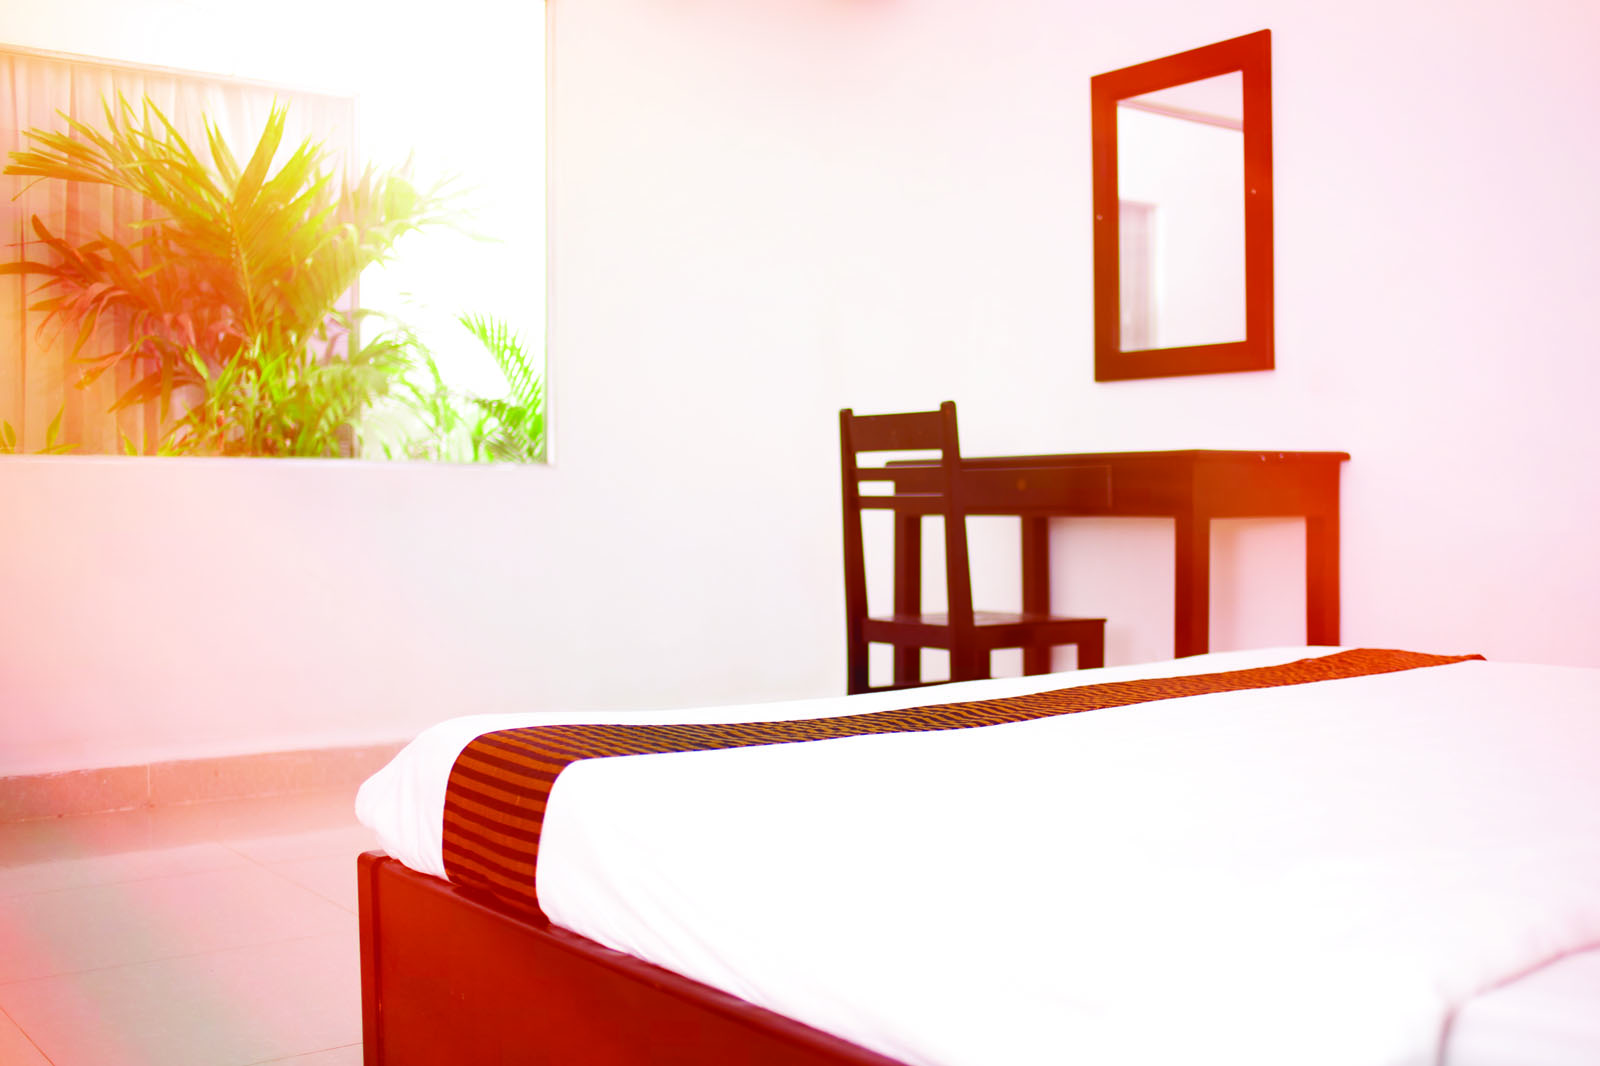 Eureka Villas - Interior - 03